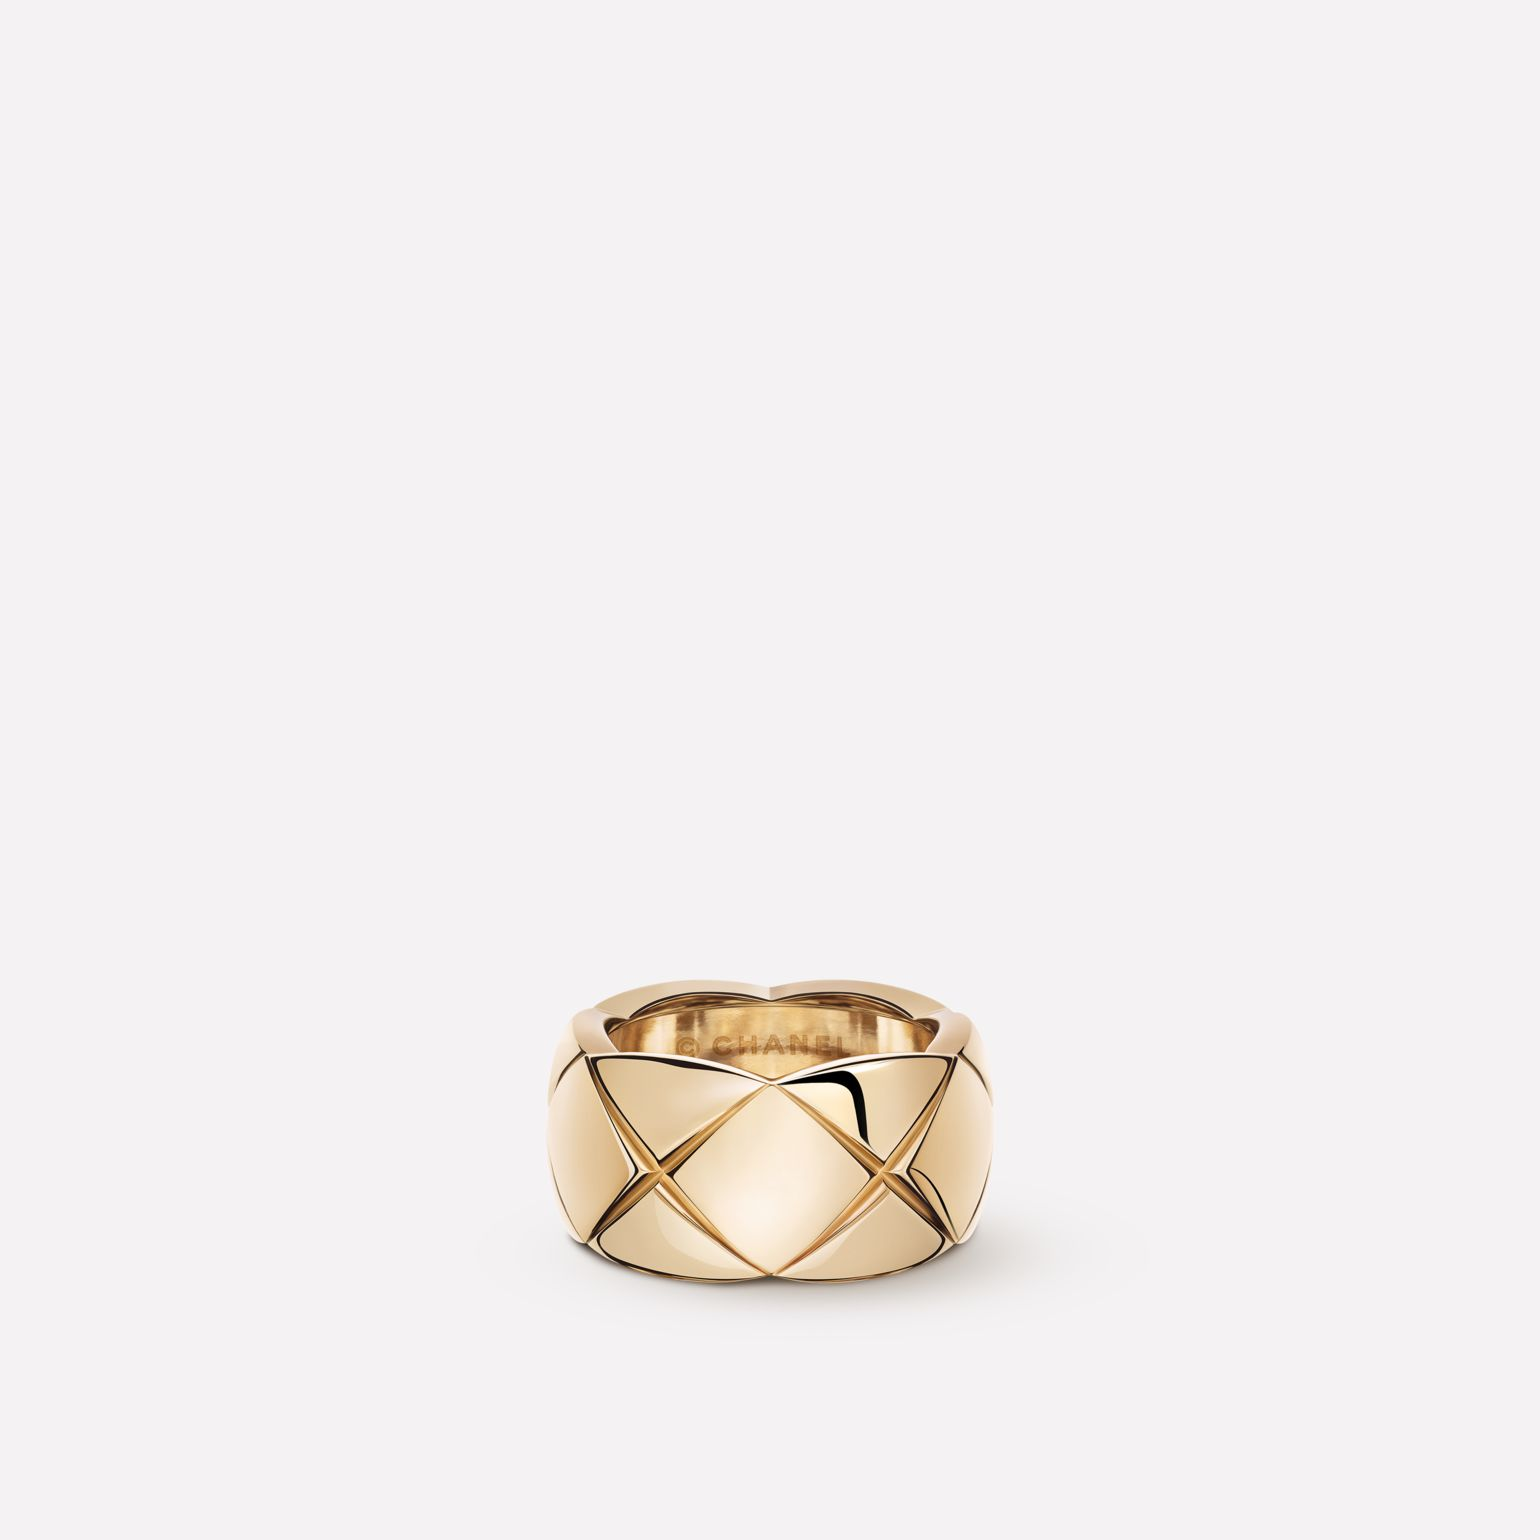 Coco Crush Ring Coco Crush quilted ring in 18K BEIGE GOLD. Medium version.